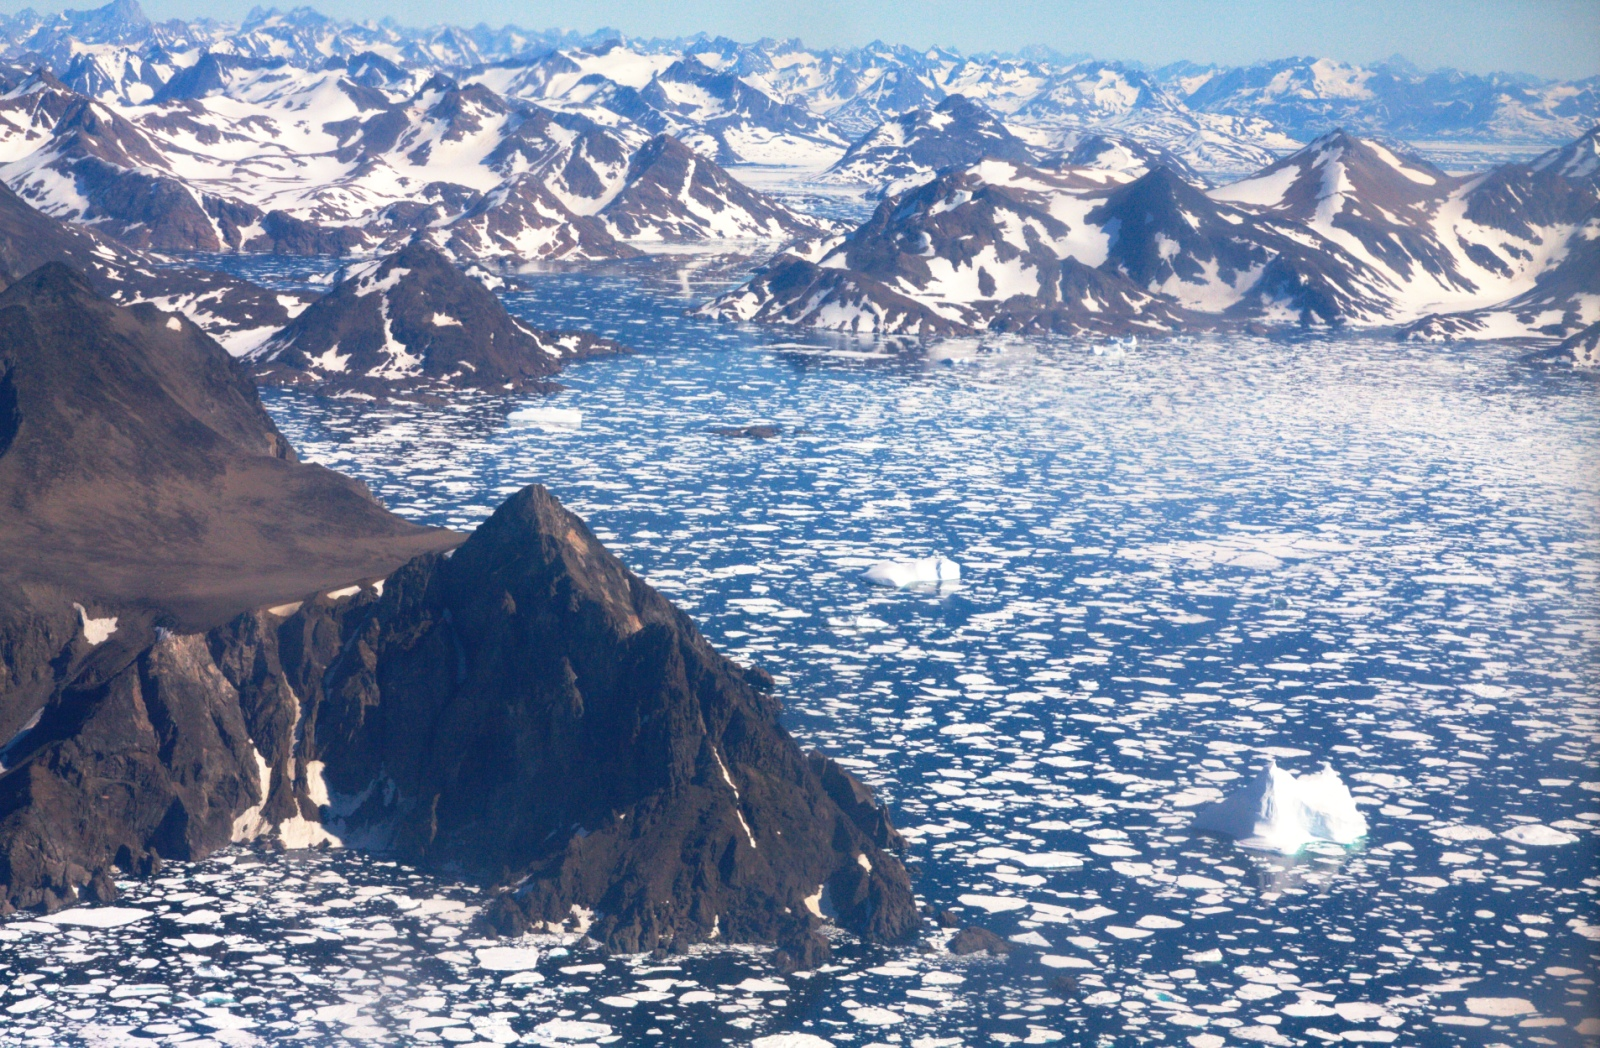 Finally! The east shore of Greenland after a long flight on a Fokker with propellers over the Arctic Ocean!